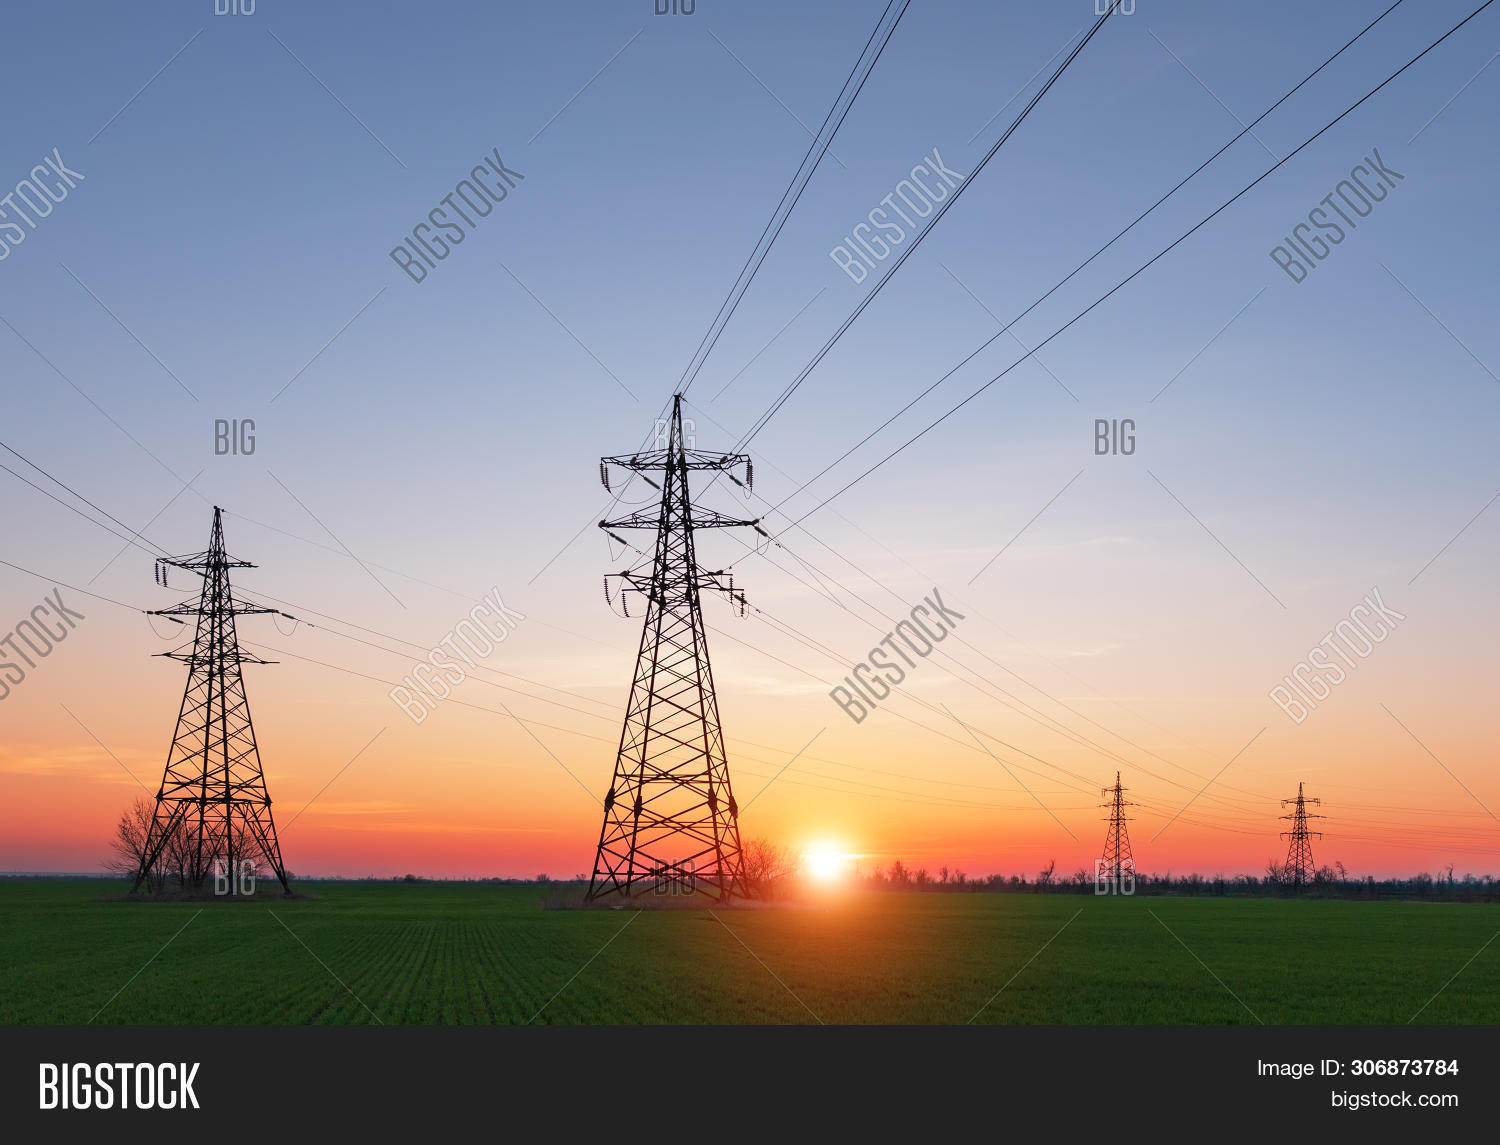 blue,cable,cloudy,current,danger,distribution,electric,electrical,electricity,energetic,energy,engine,engineering,environment,equipment,evening,generation,generator,grid,high,industrial,industry,line,metal,plant,pole,pollution,power,powerful,pylon,silhouette,sky,station,steel,structure,sunset,supply,tall,technology,tower,transmission,volt,voltage,watt,wire